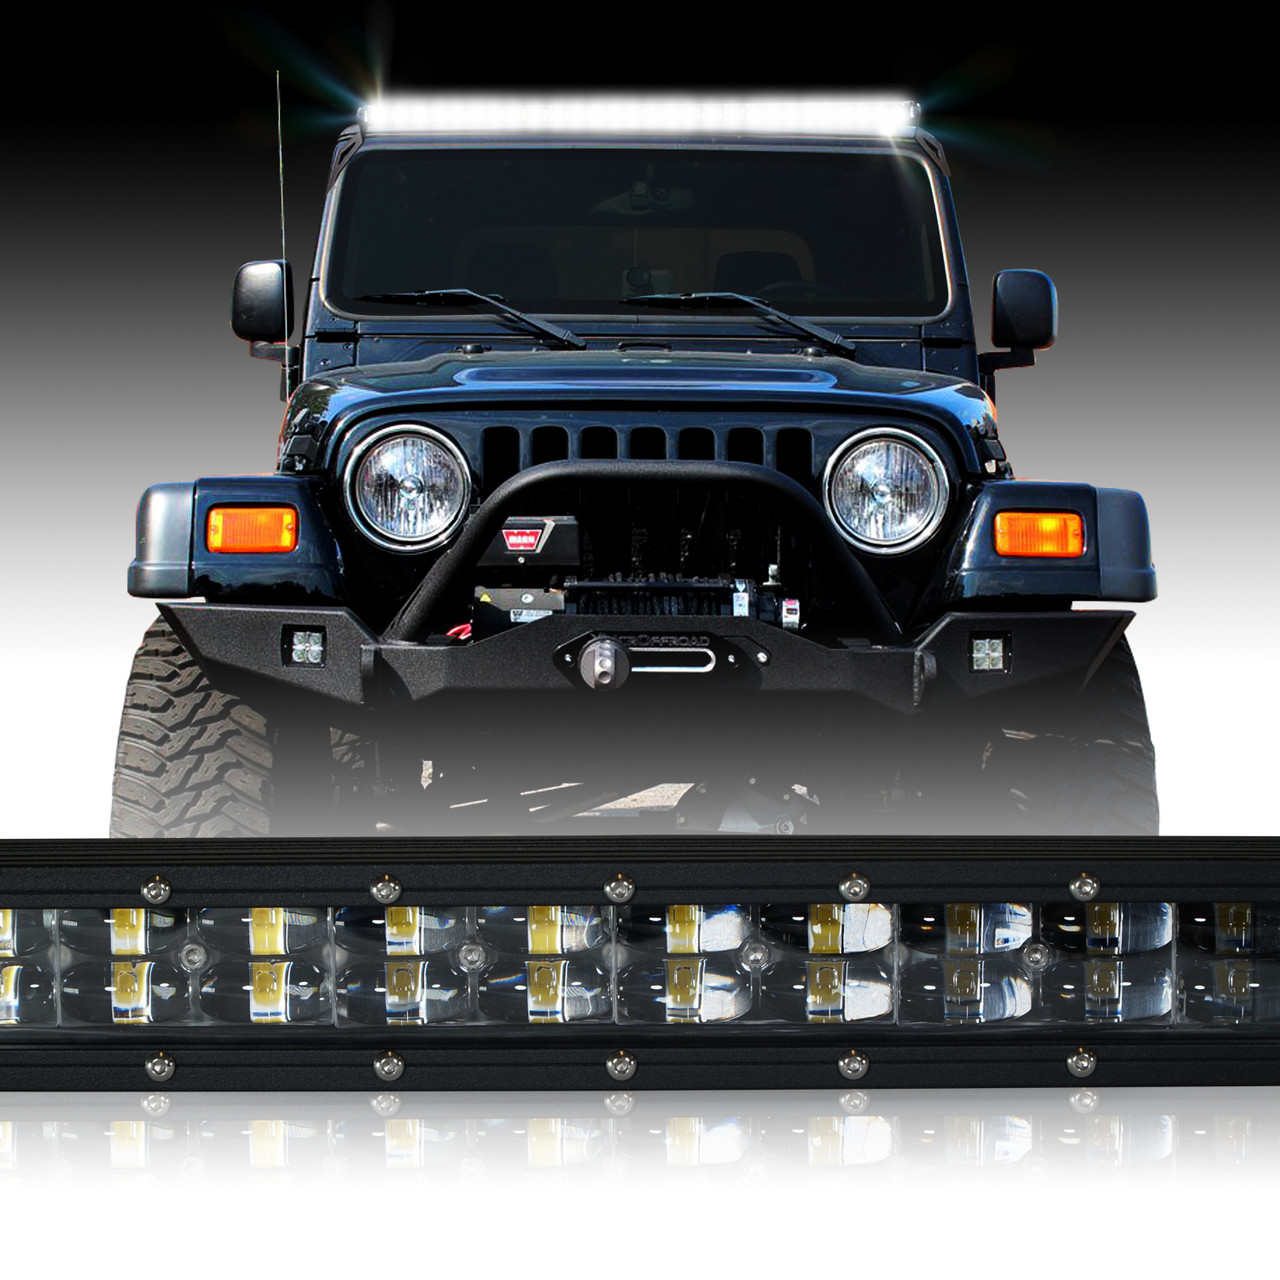 LED Light Bar 288W 50 Inches cket Wiring Harness Kit for Wrangler TJ on